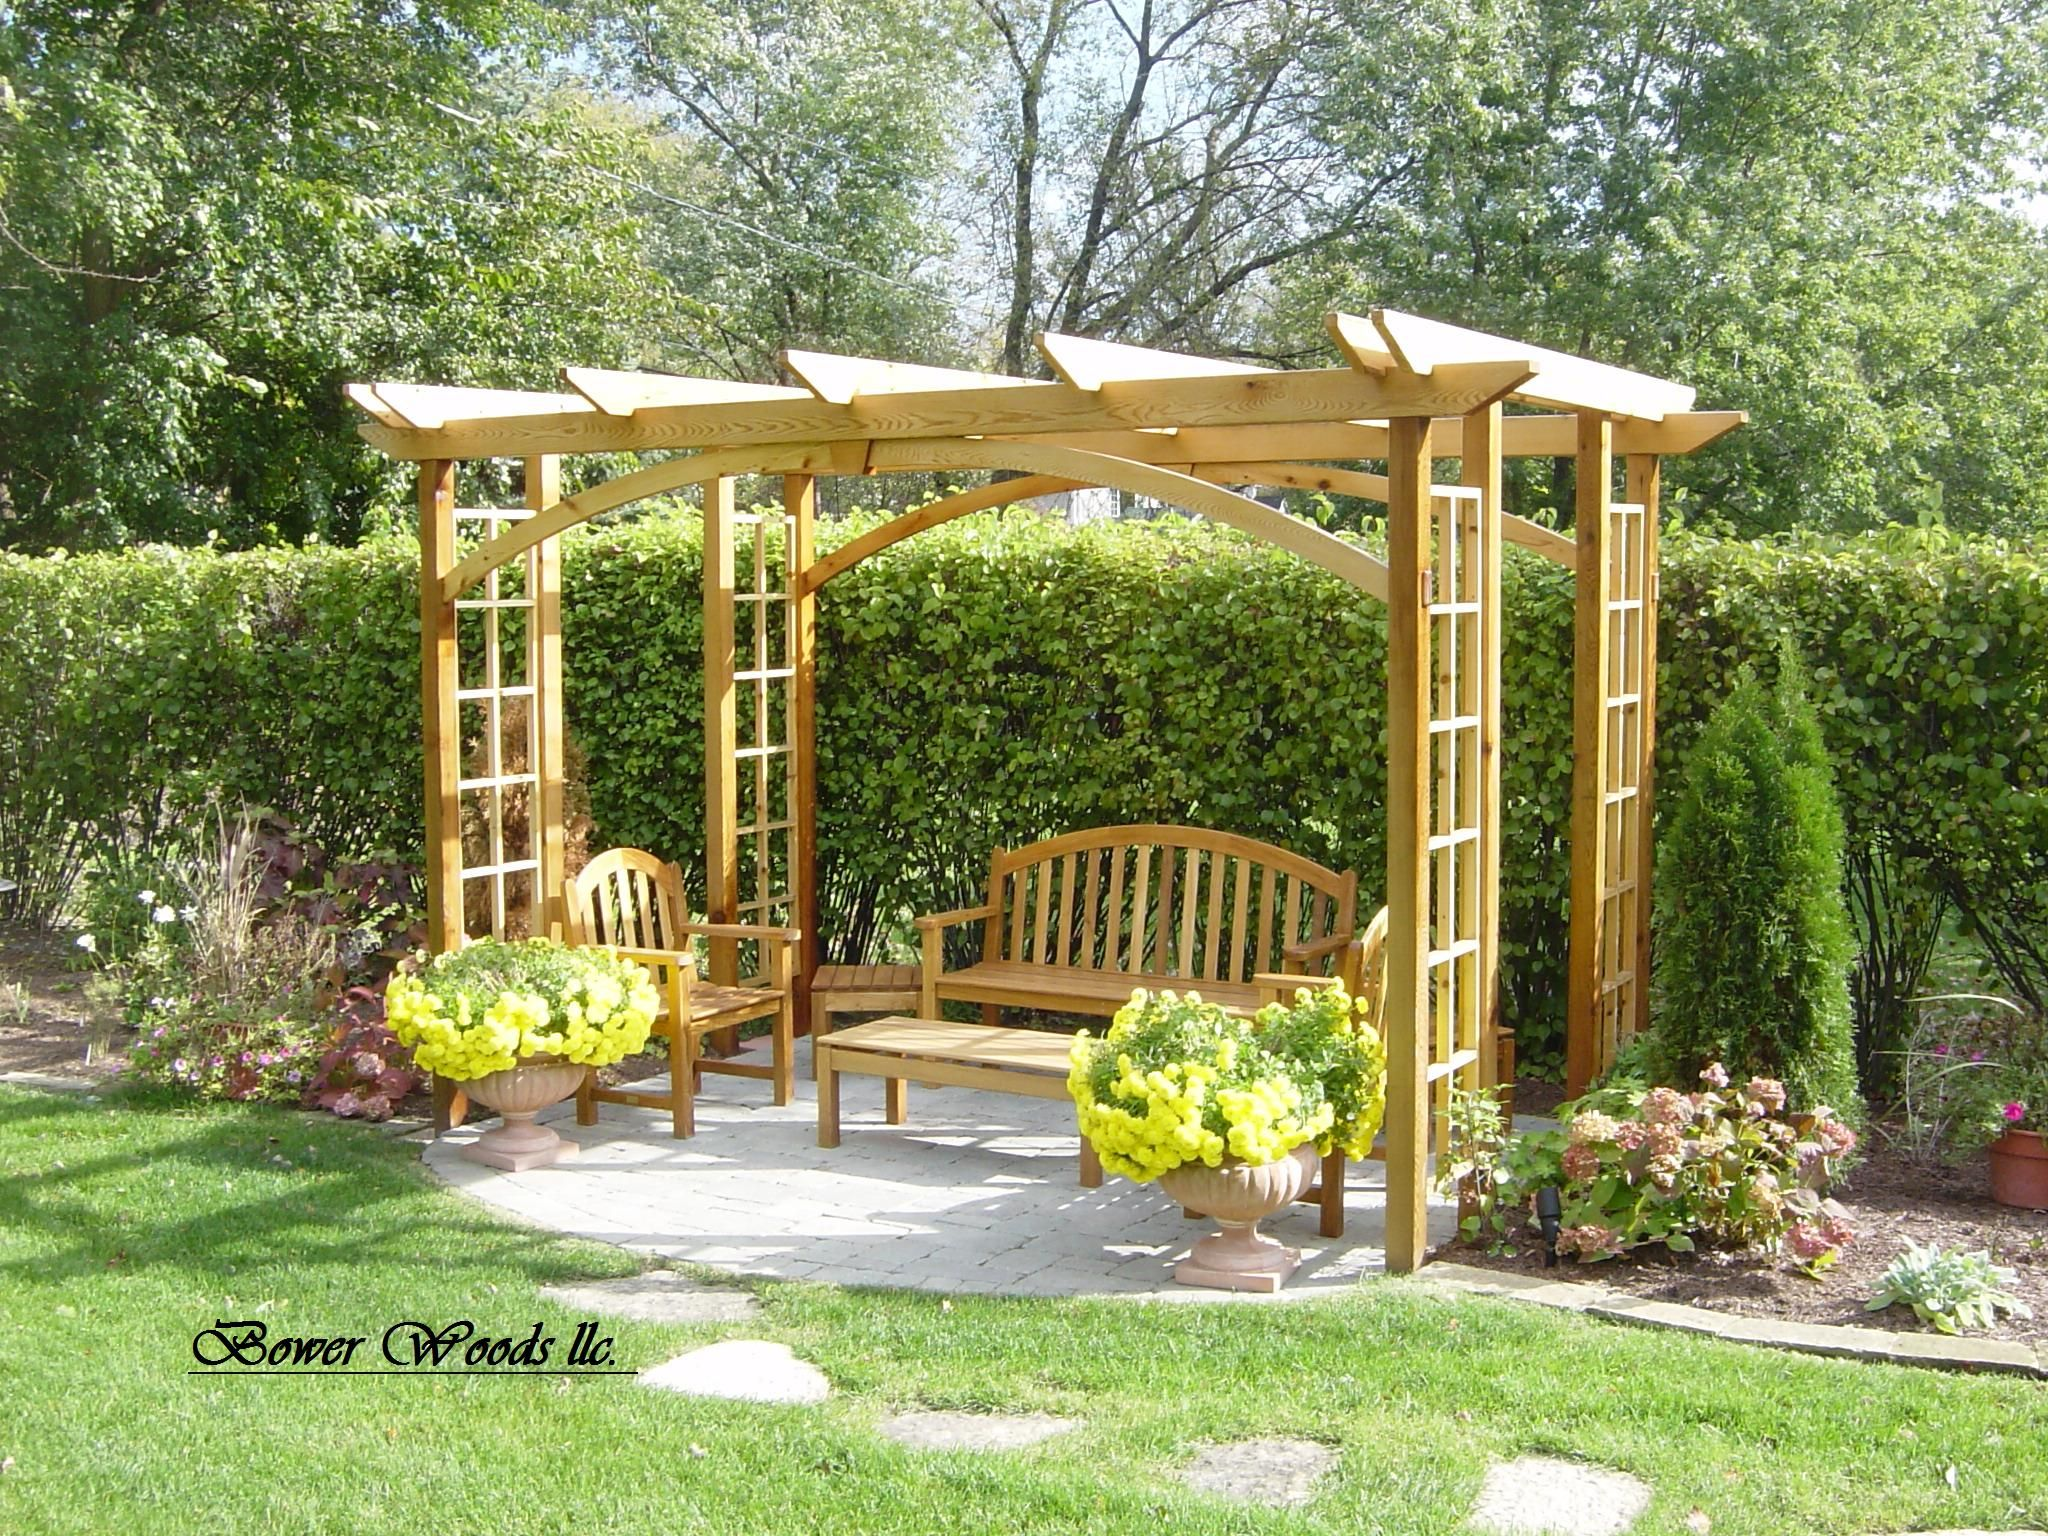 Bower woods llc custom garden structures traditional for Backyard planting designs